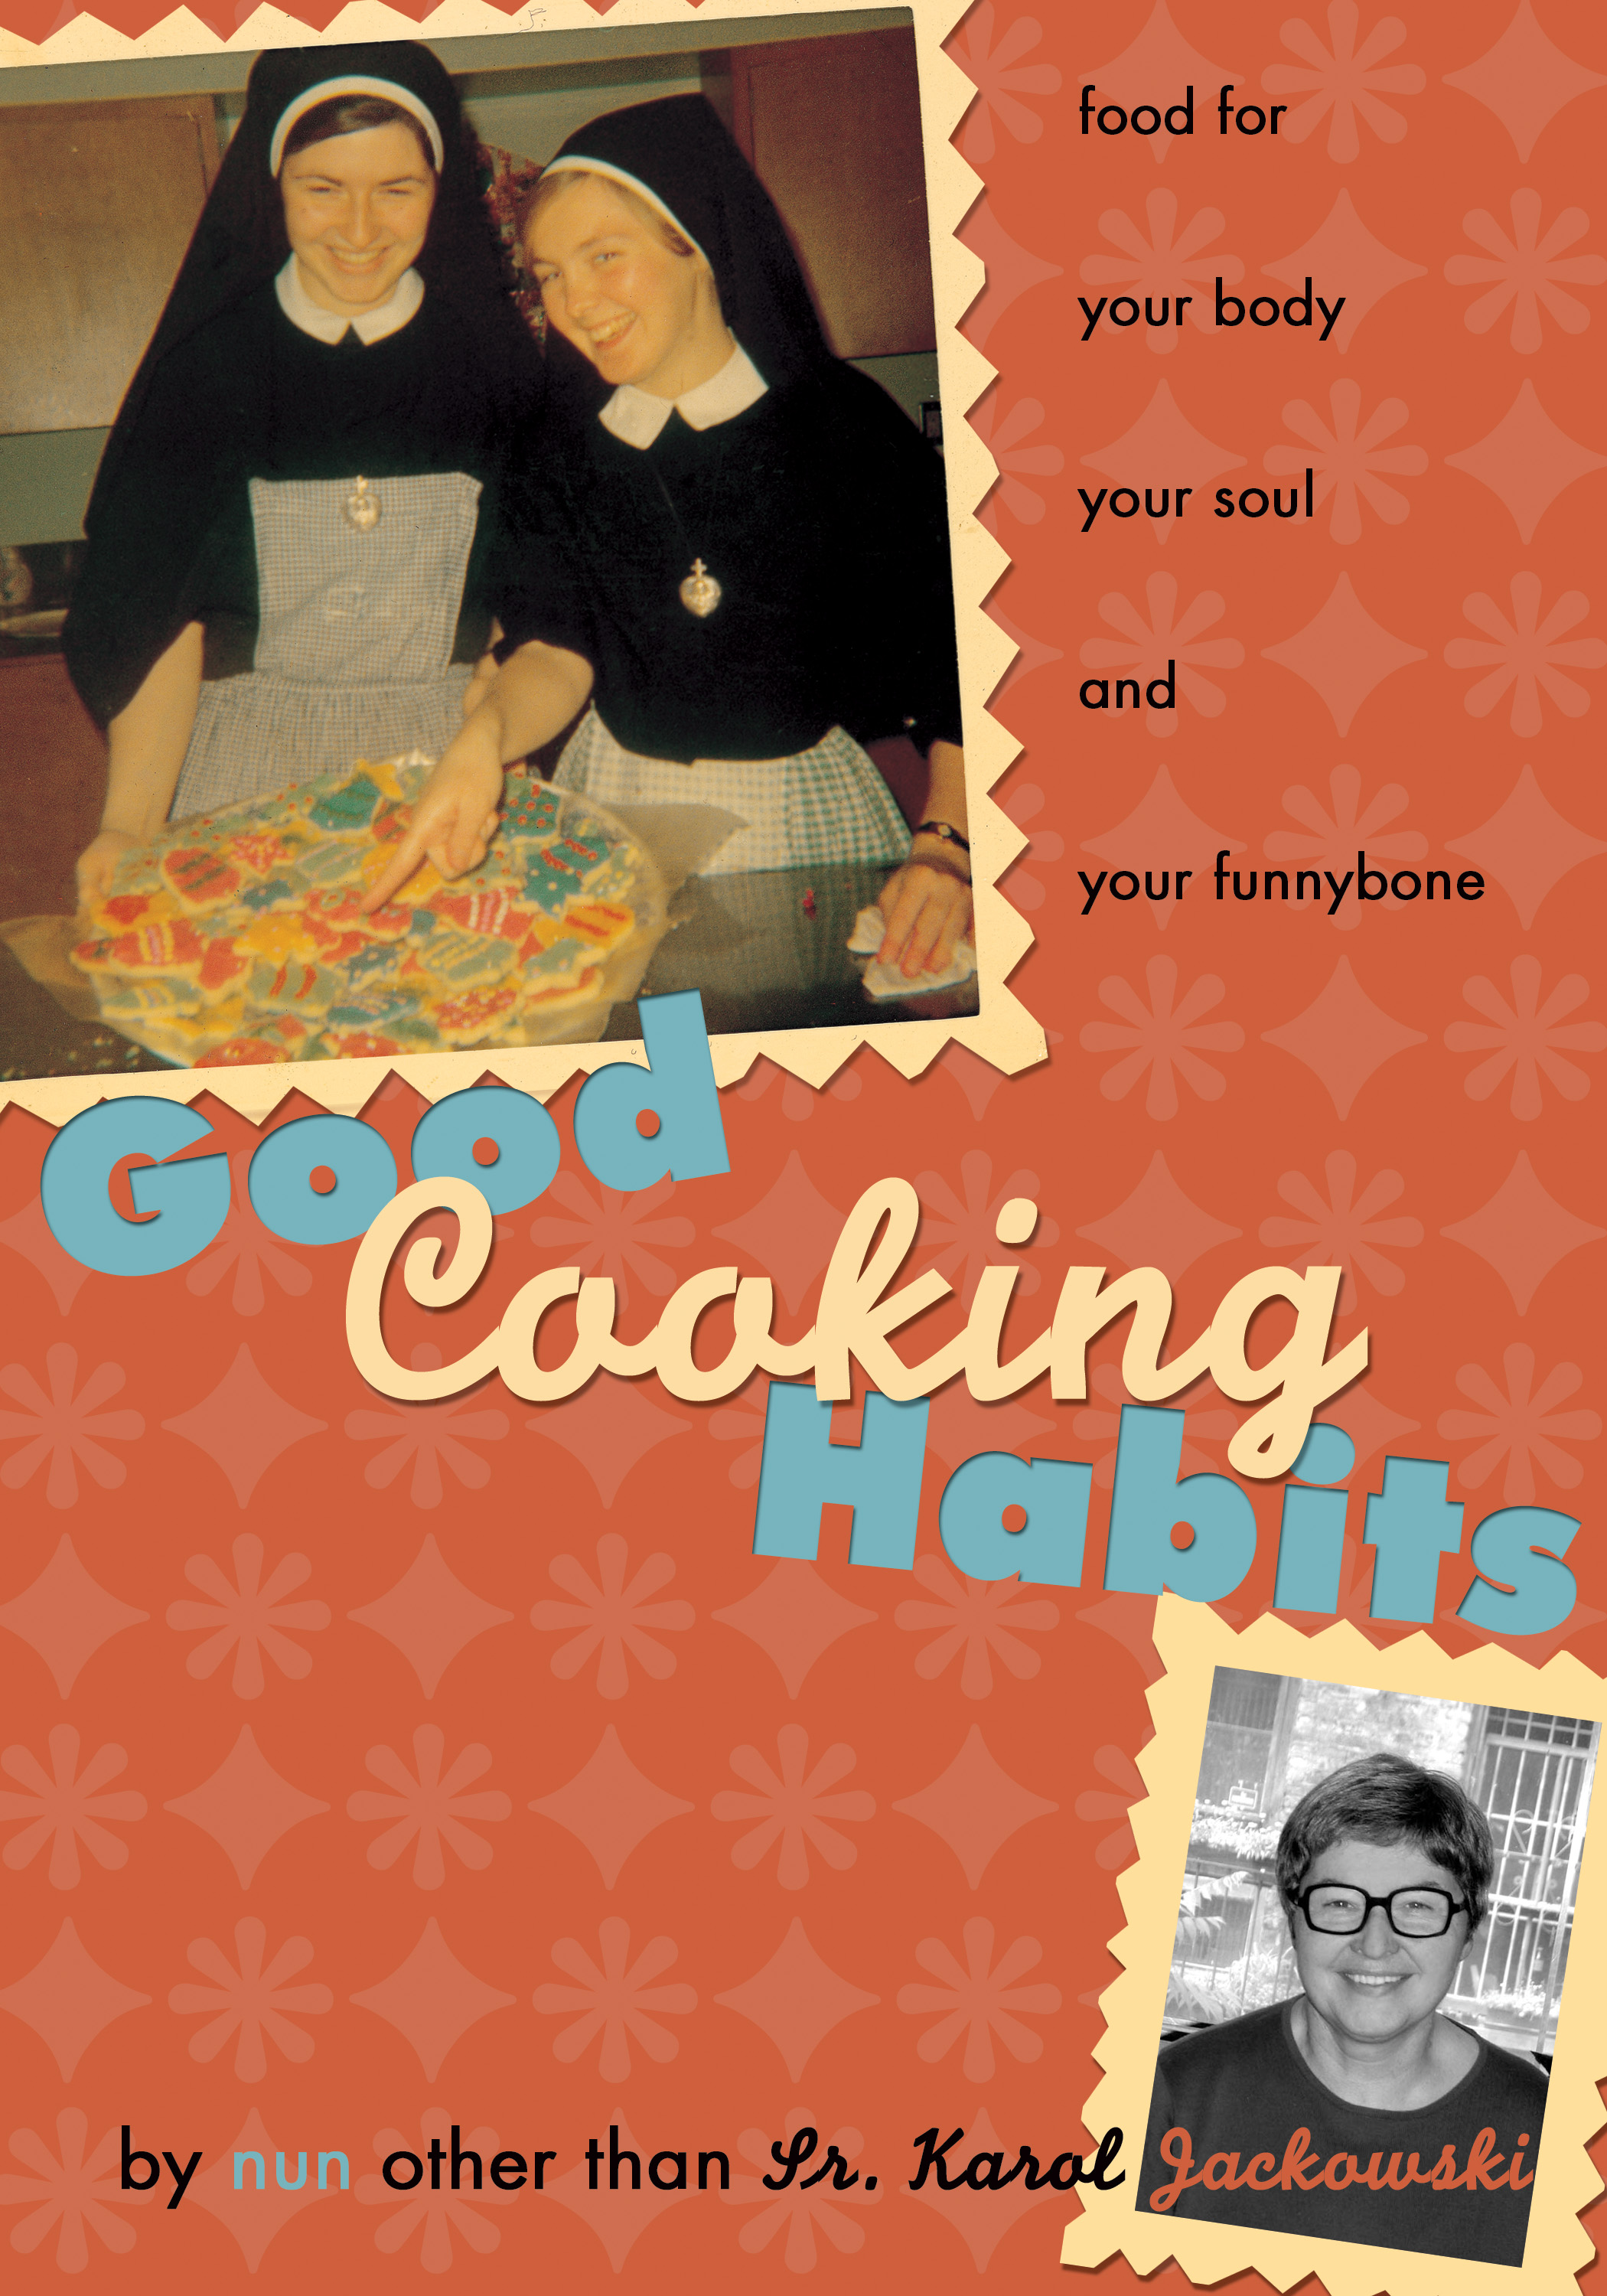 Good Cooking Habits